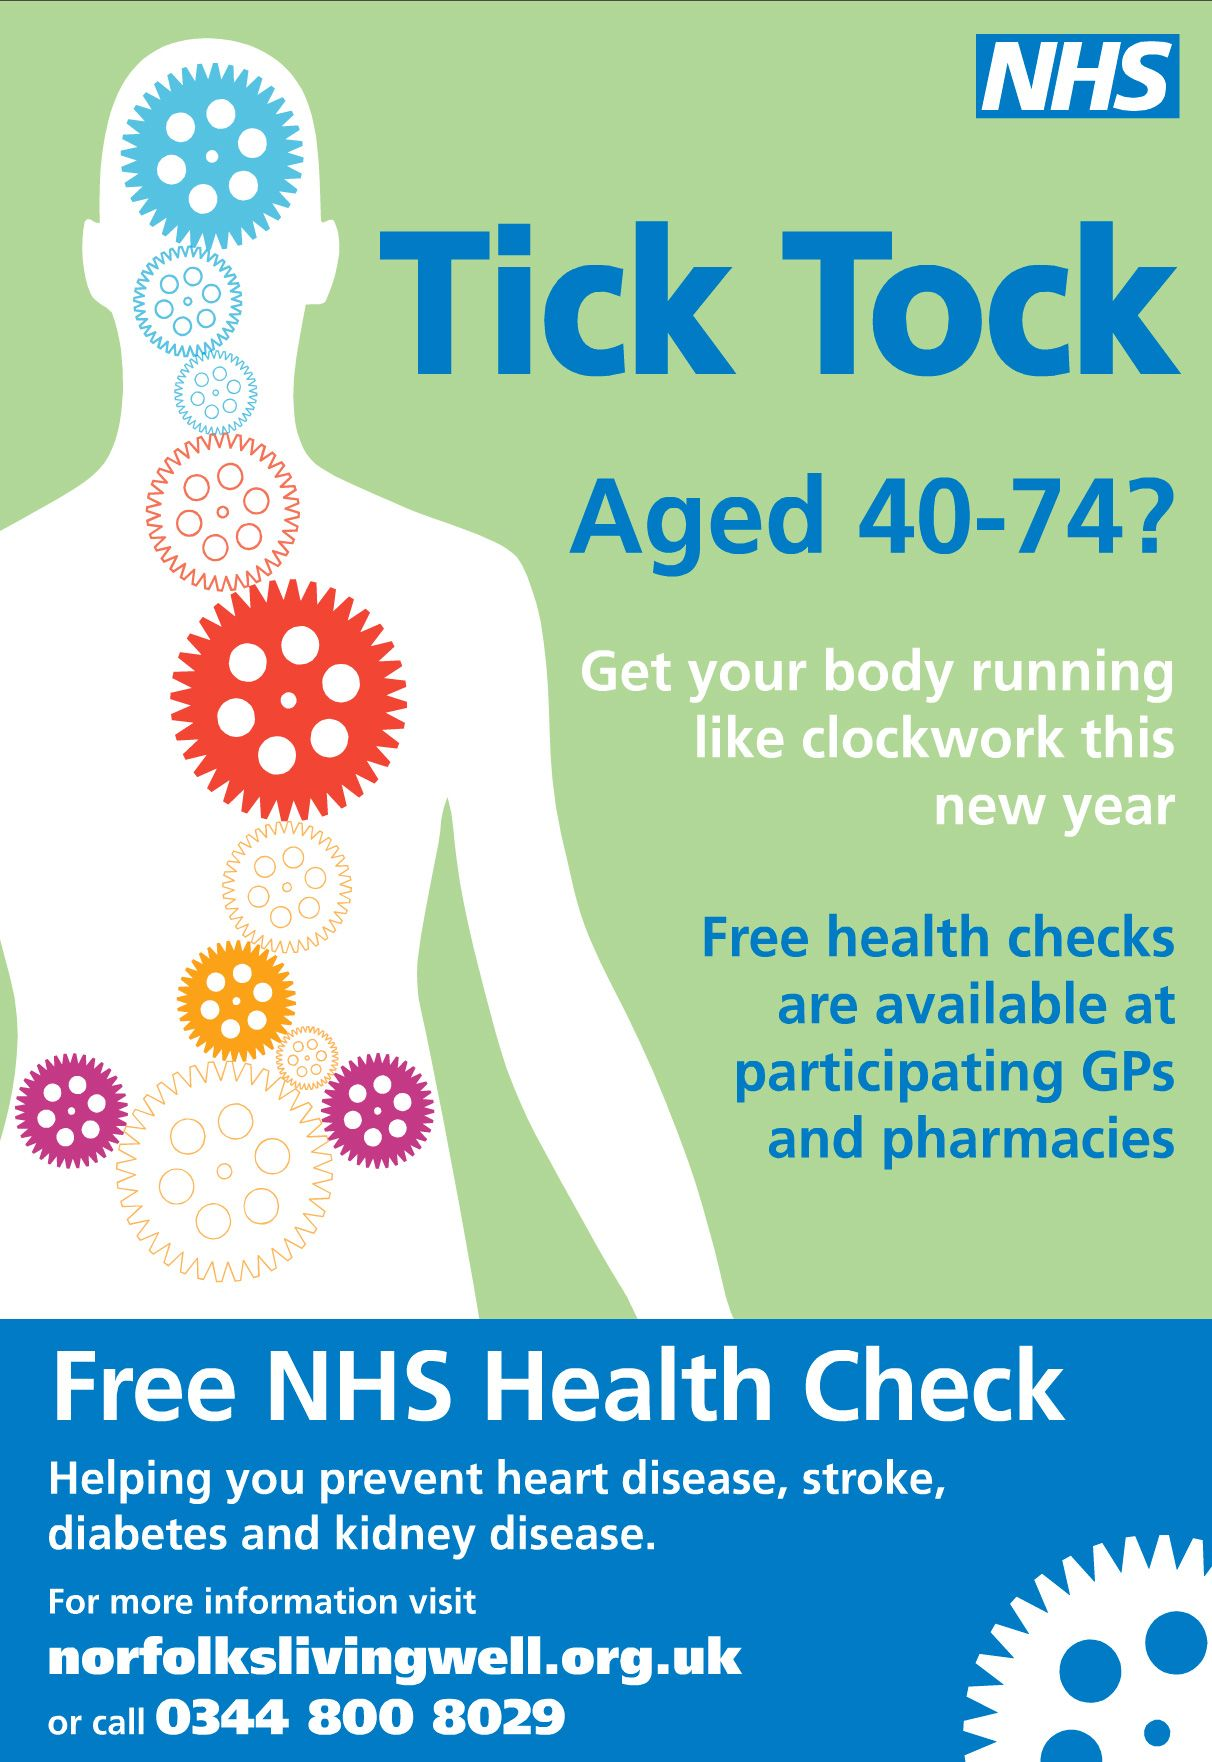 748 Msn1 Nhs Health Check Nhs Health Check Nhs